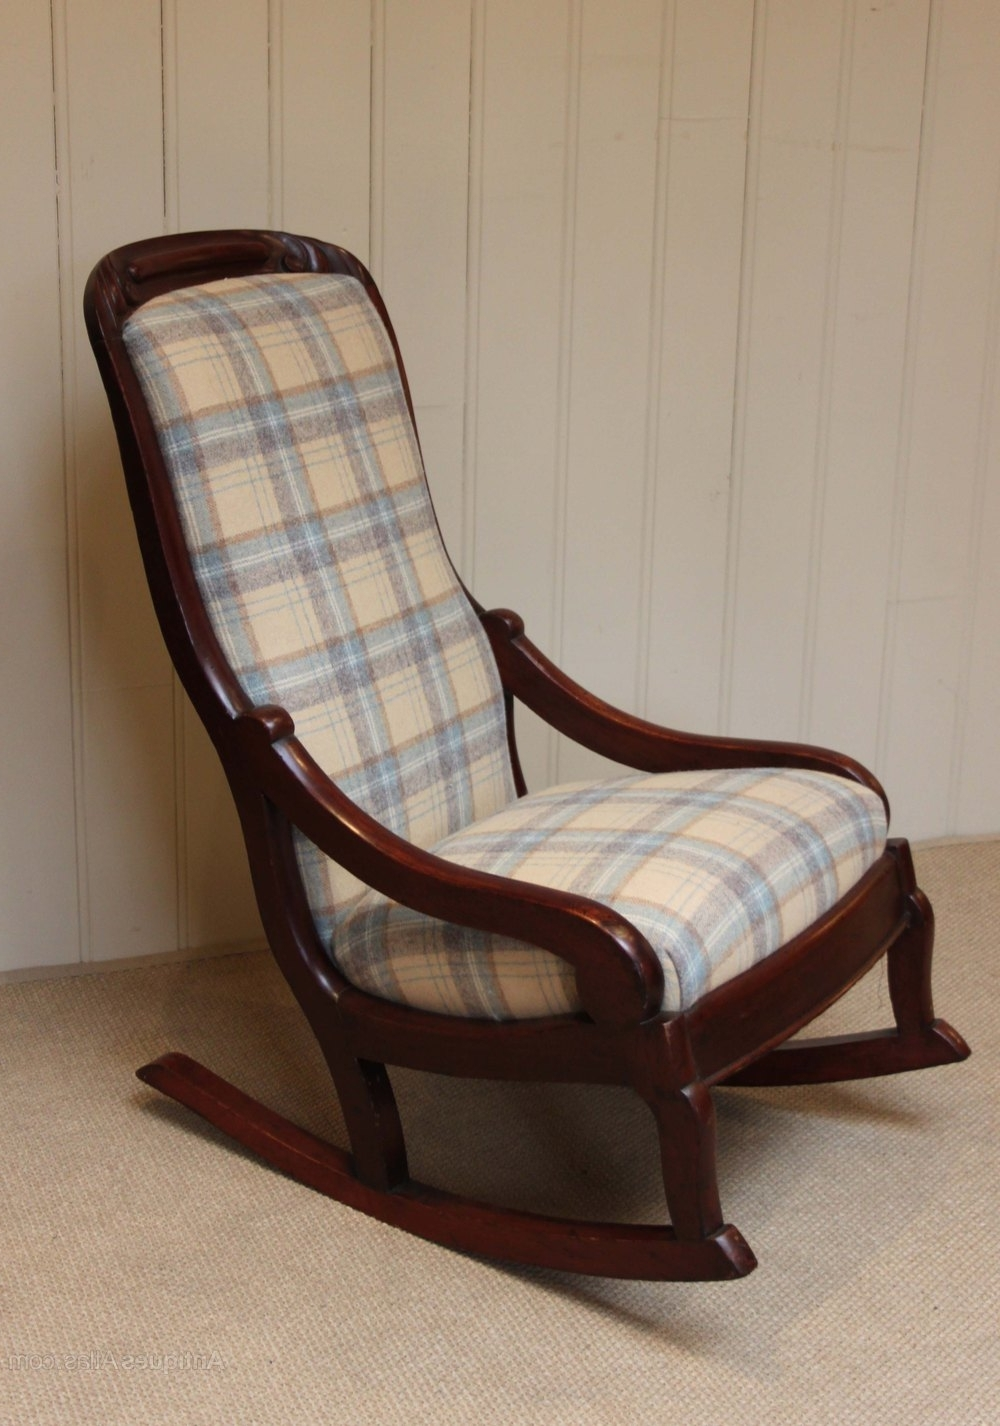 Fashionable Late Victorian Upholstered Rocking Chair – Antiques Atlas For Upholstered Rocking Chairs (View 7 of 15)